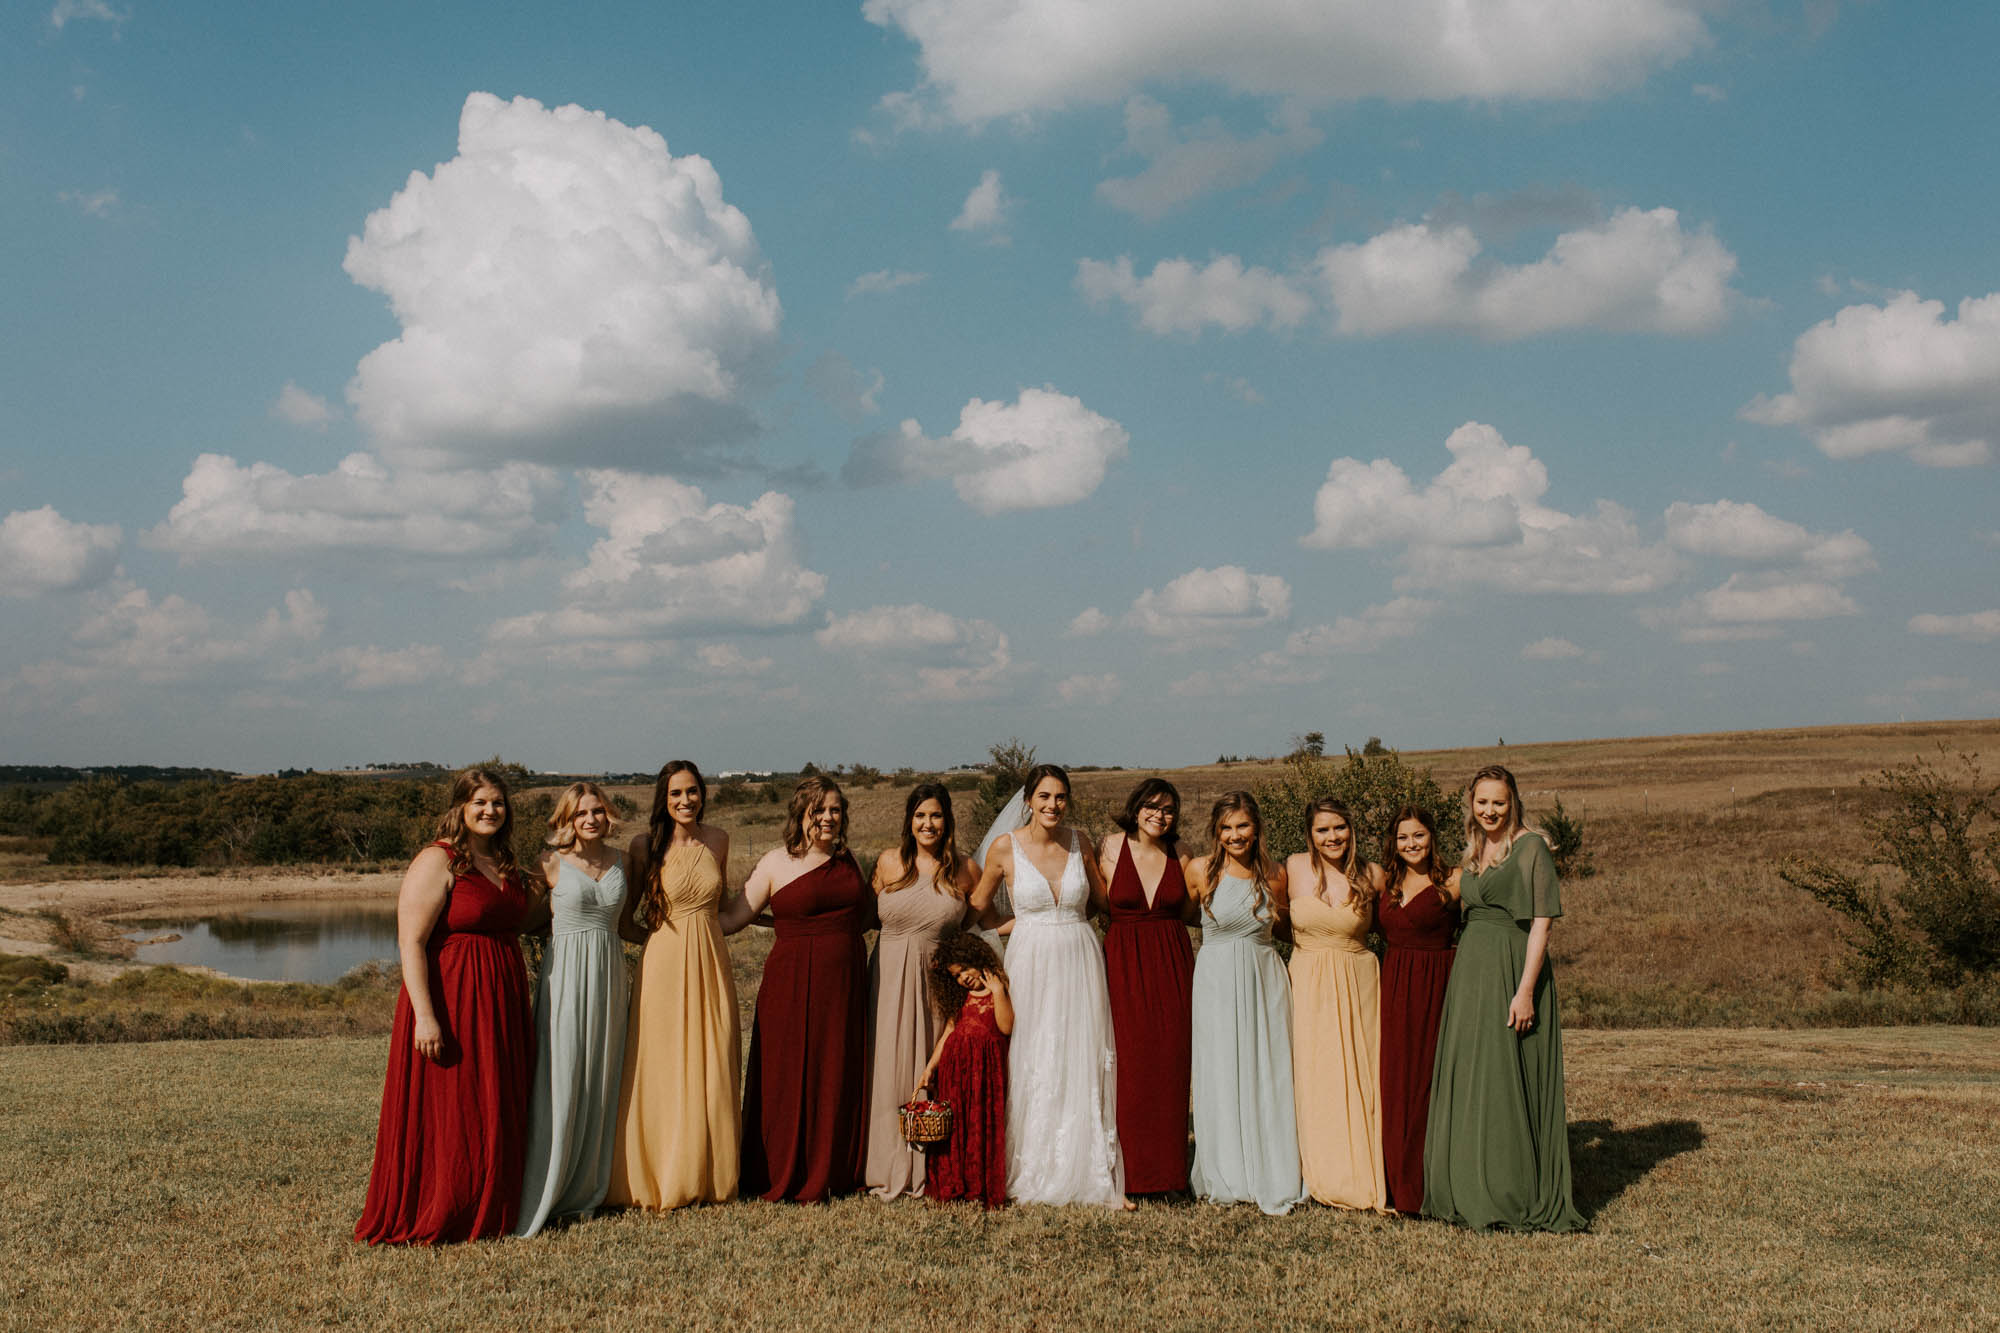 bridal party pictures in a field in north texas wedding